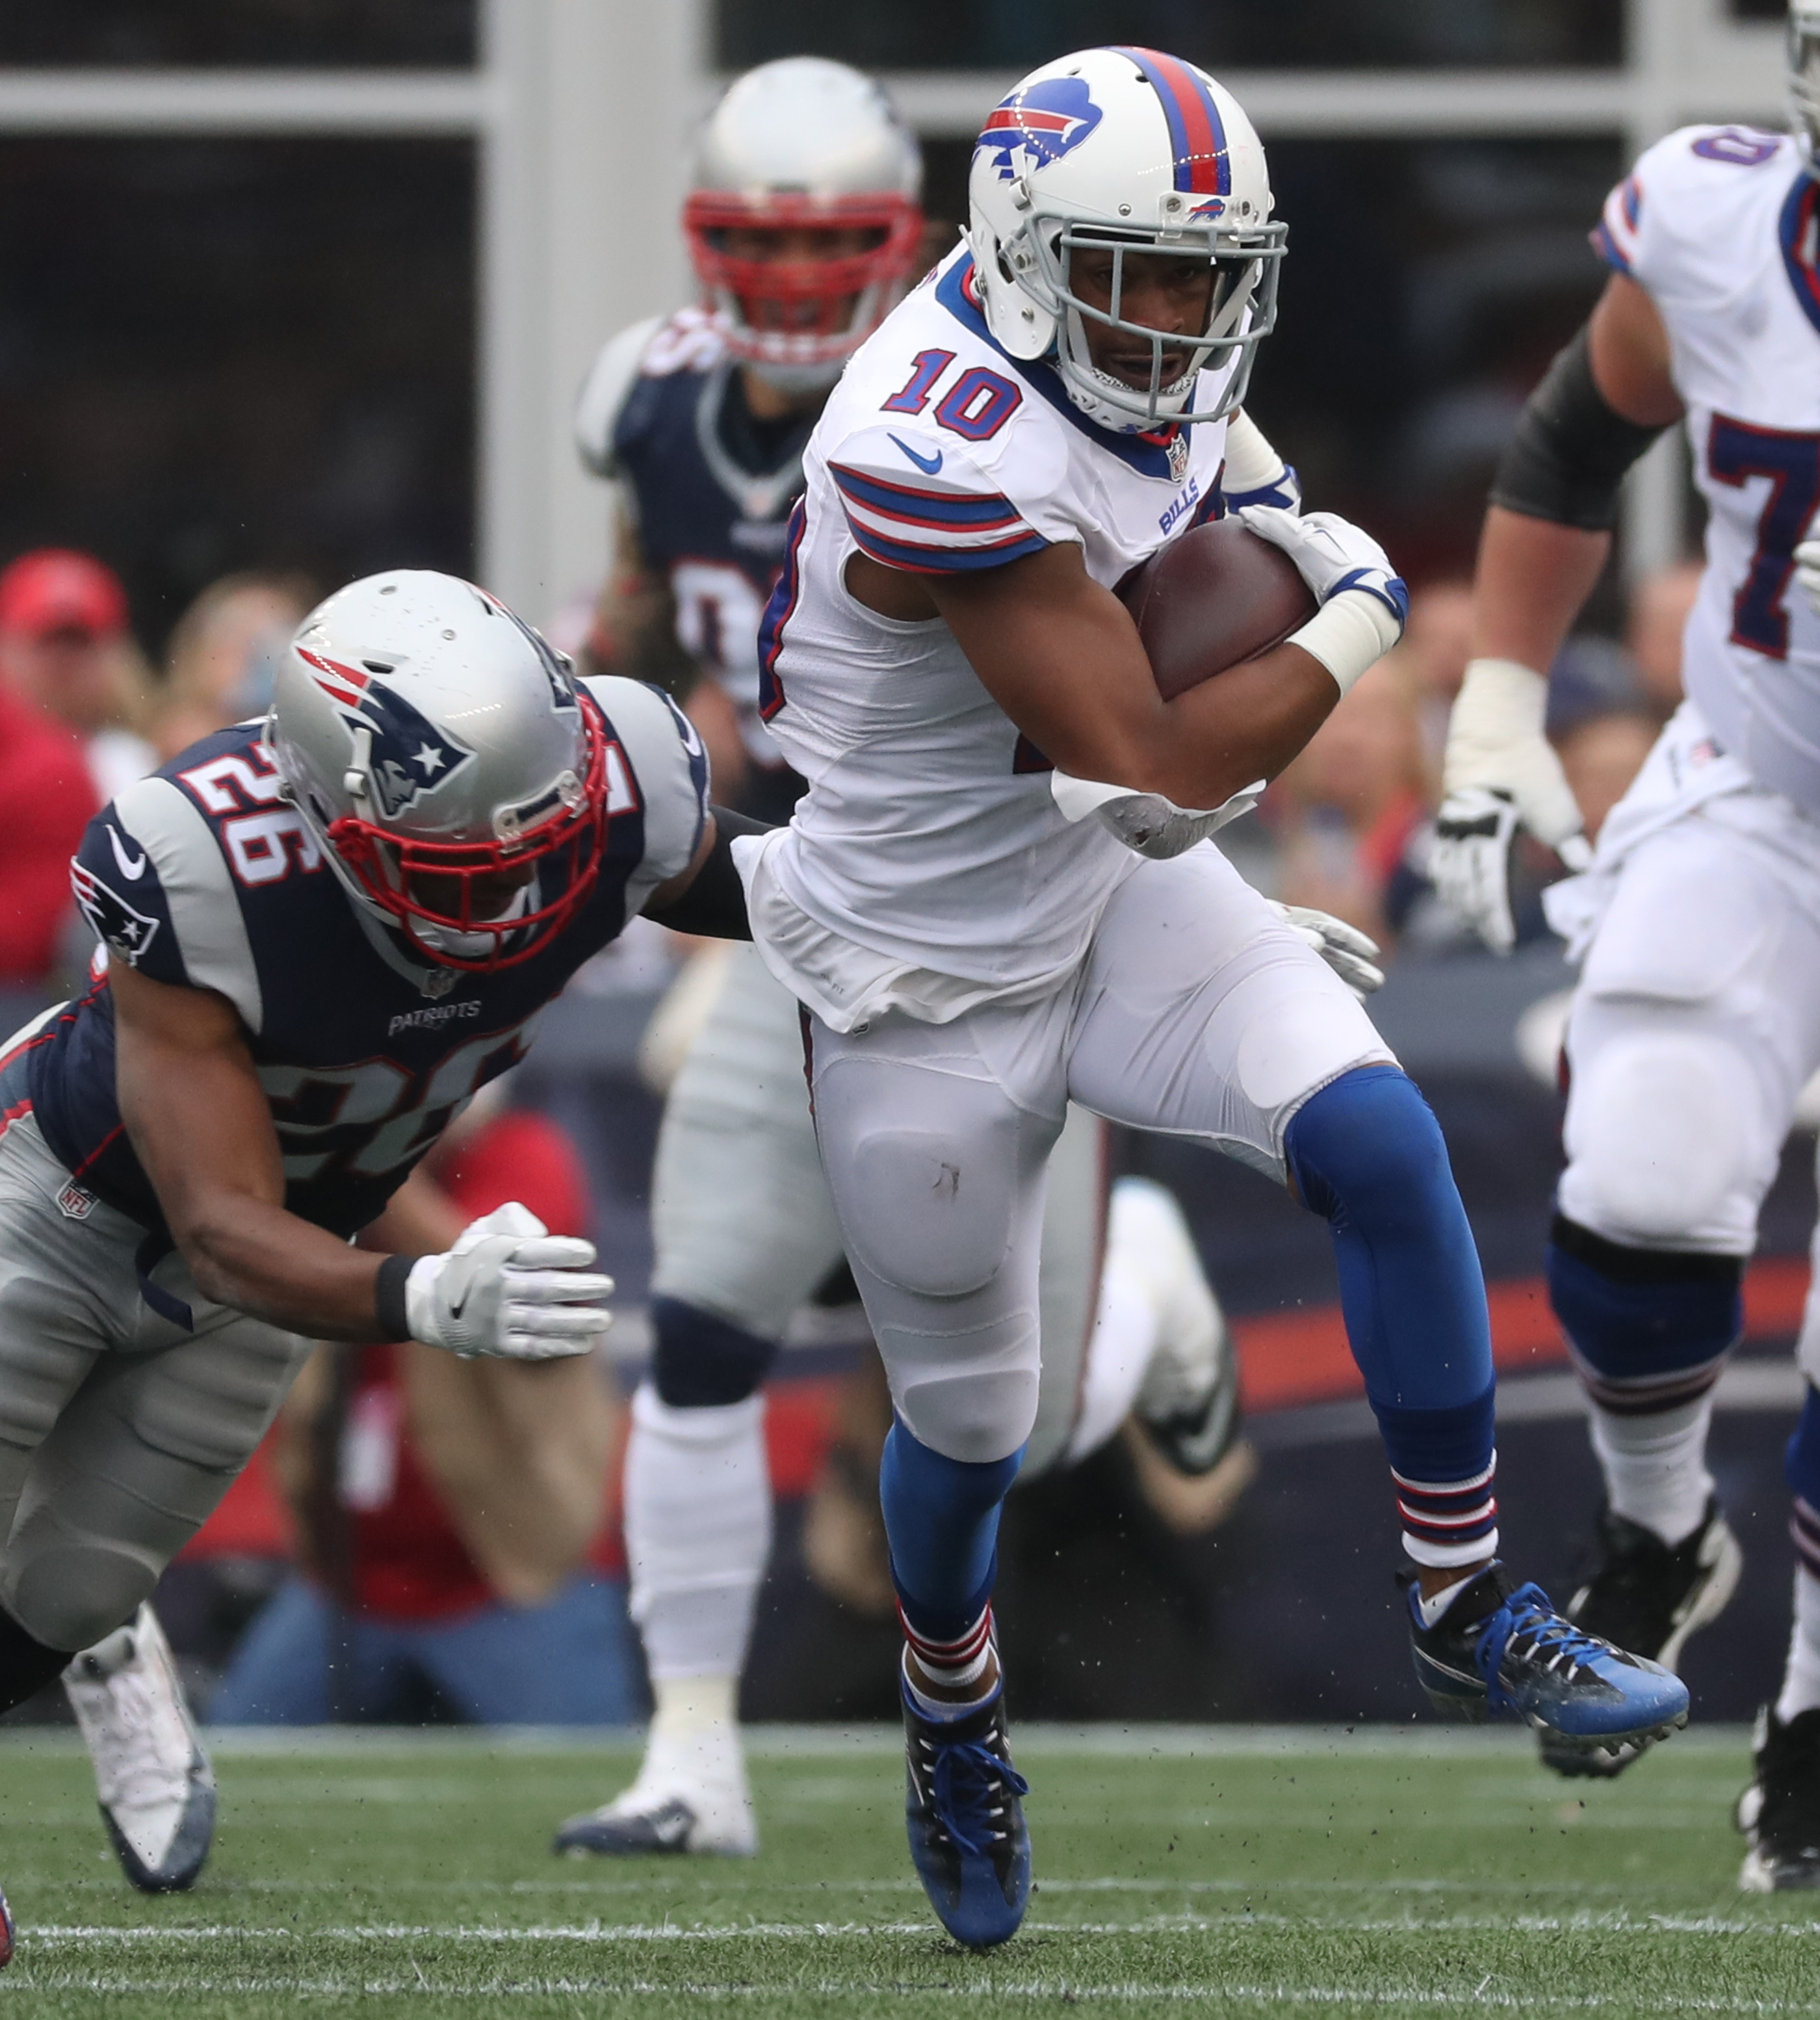 Buffalo Bills wide receiver Robert Woods (10) will return to the Coliseum on Sunday for the first time since his days at Southern California. (James P. McCoy/ Buffalo News)